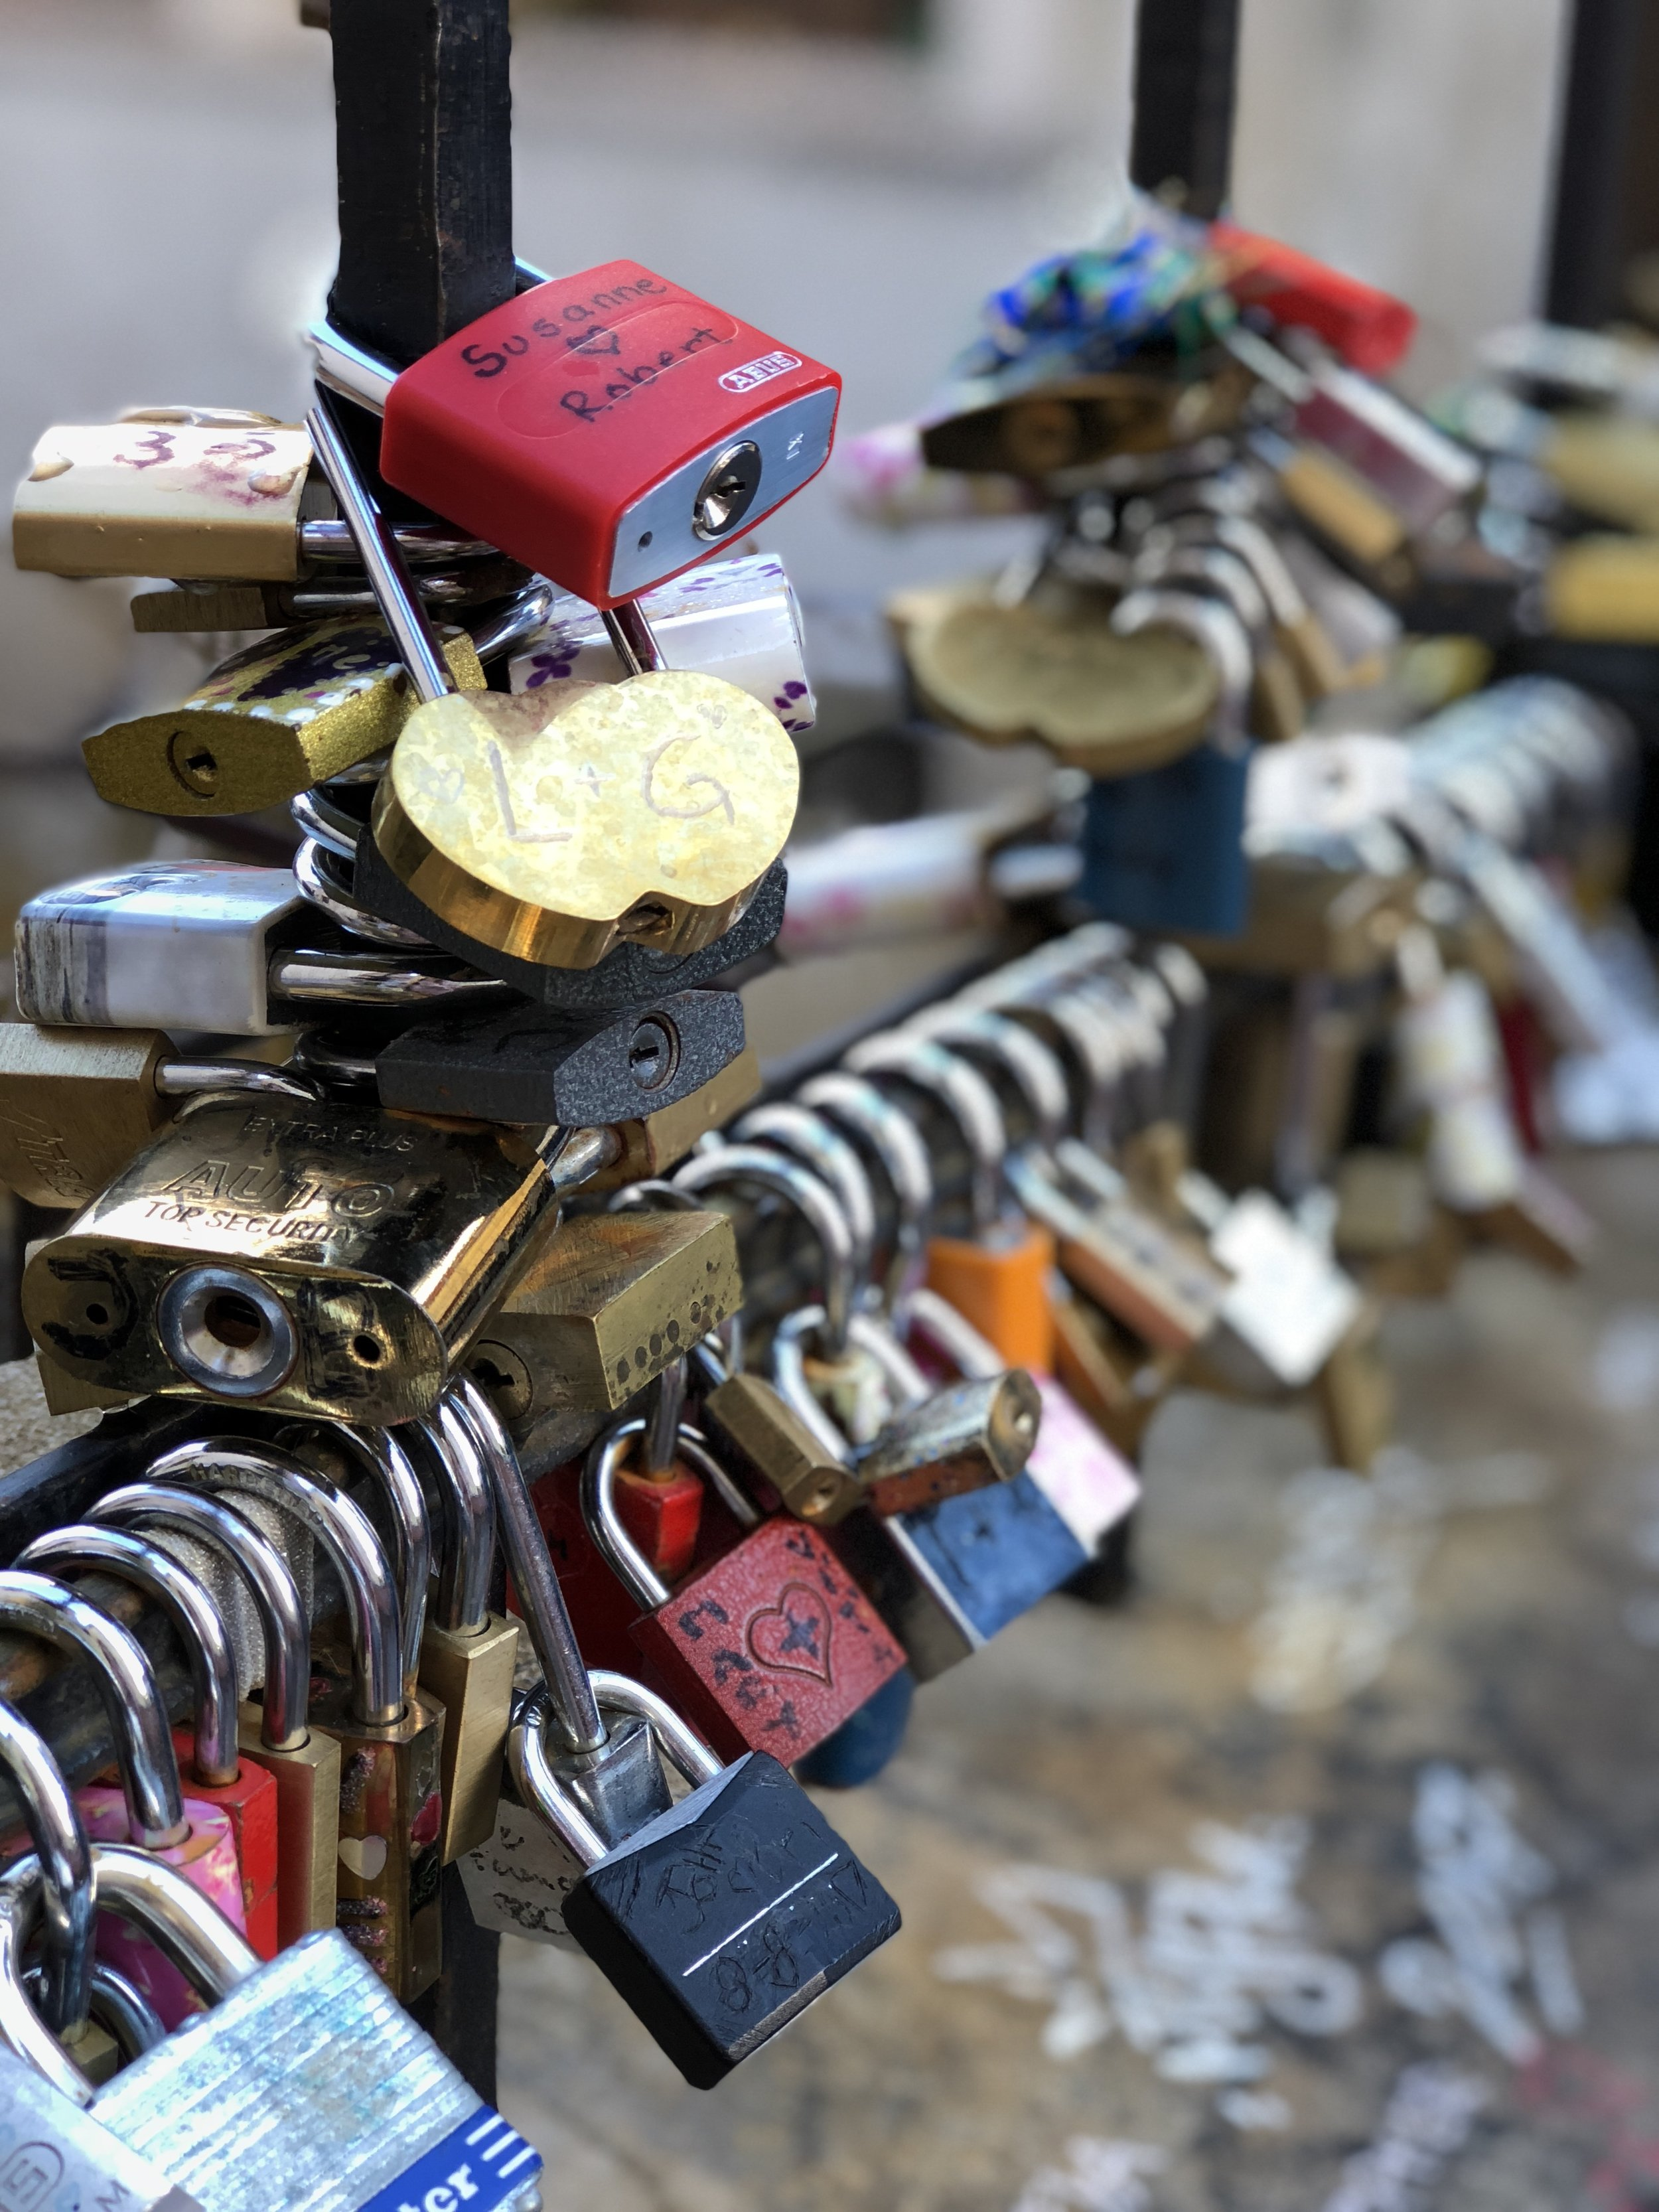 I love finding love locks in European cities. What better way to leave a piece of you behind on a trip.